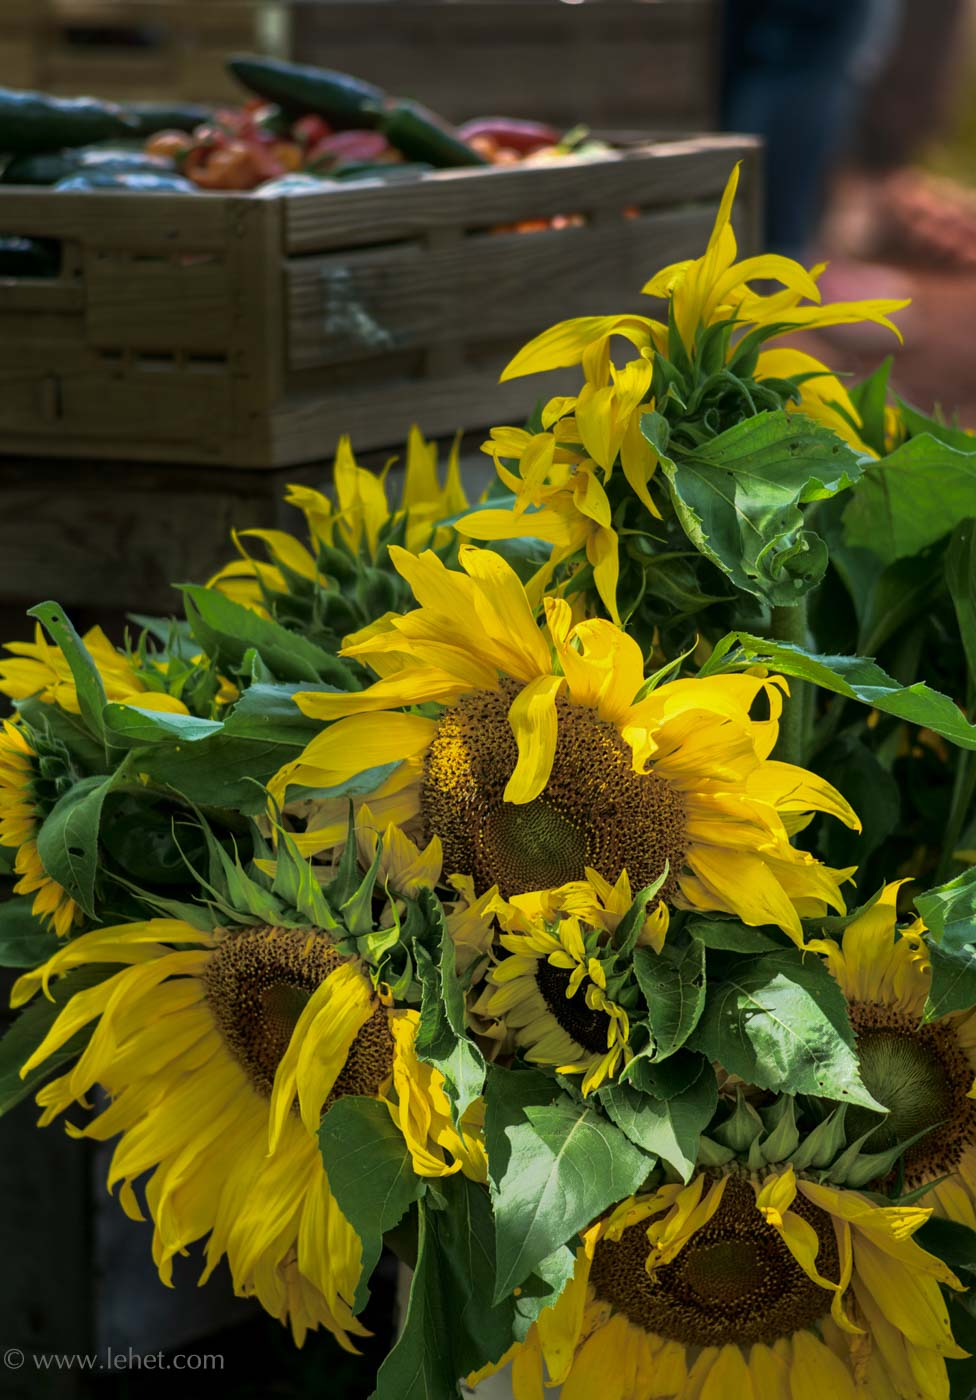 Bucket of Sunflowers at Farmer's Market